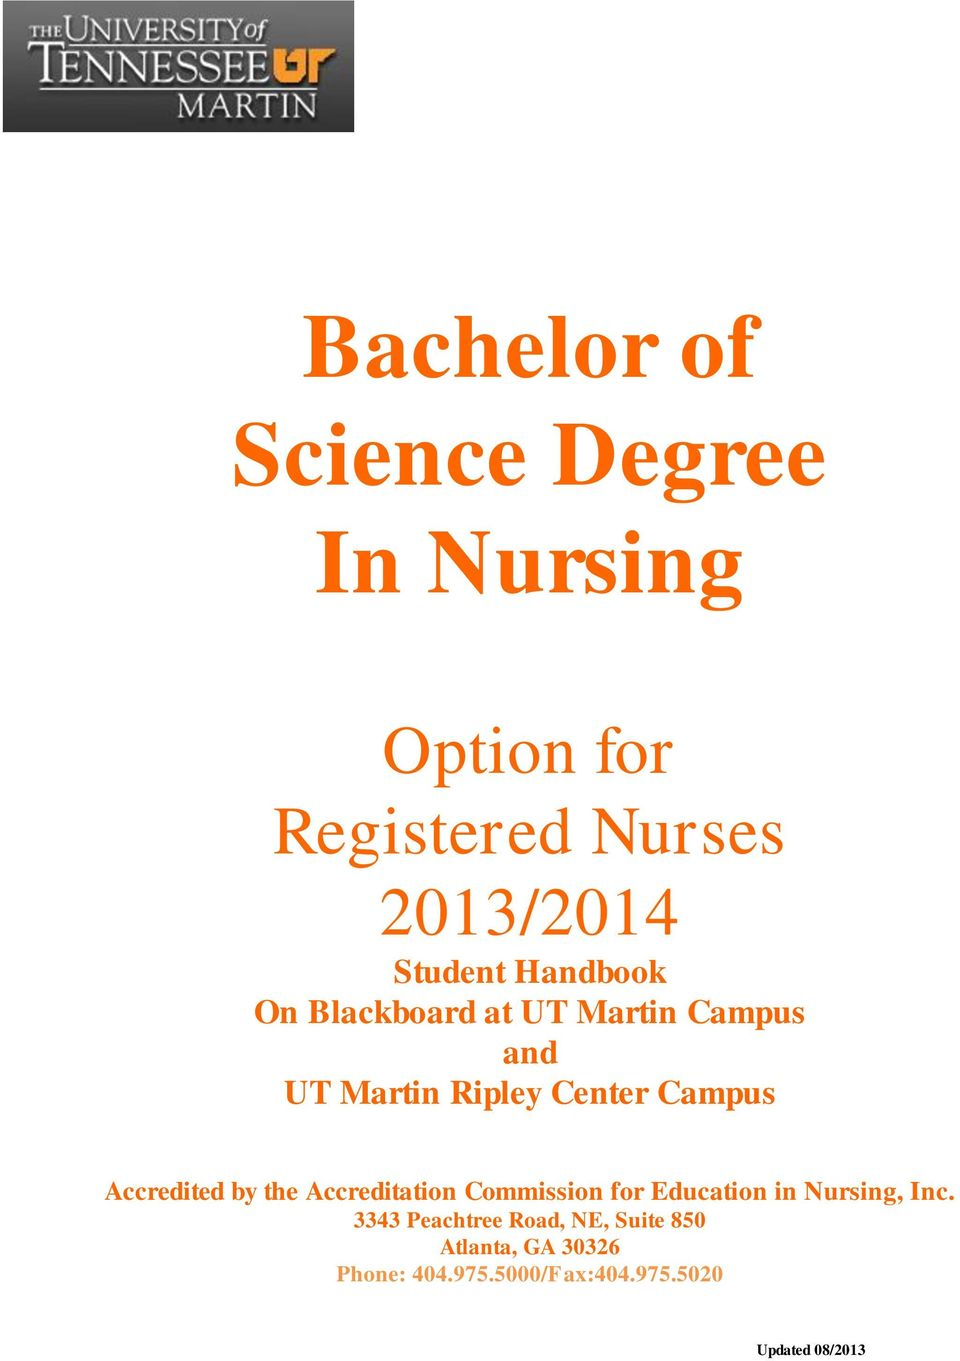 Accredited by the Accreditation Commission for Education in Nursing, Inc.